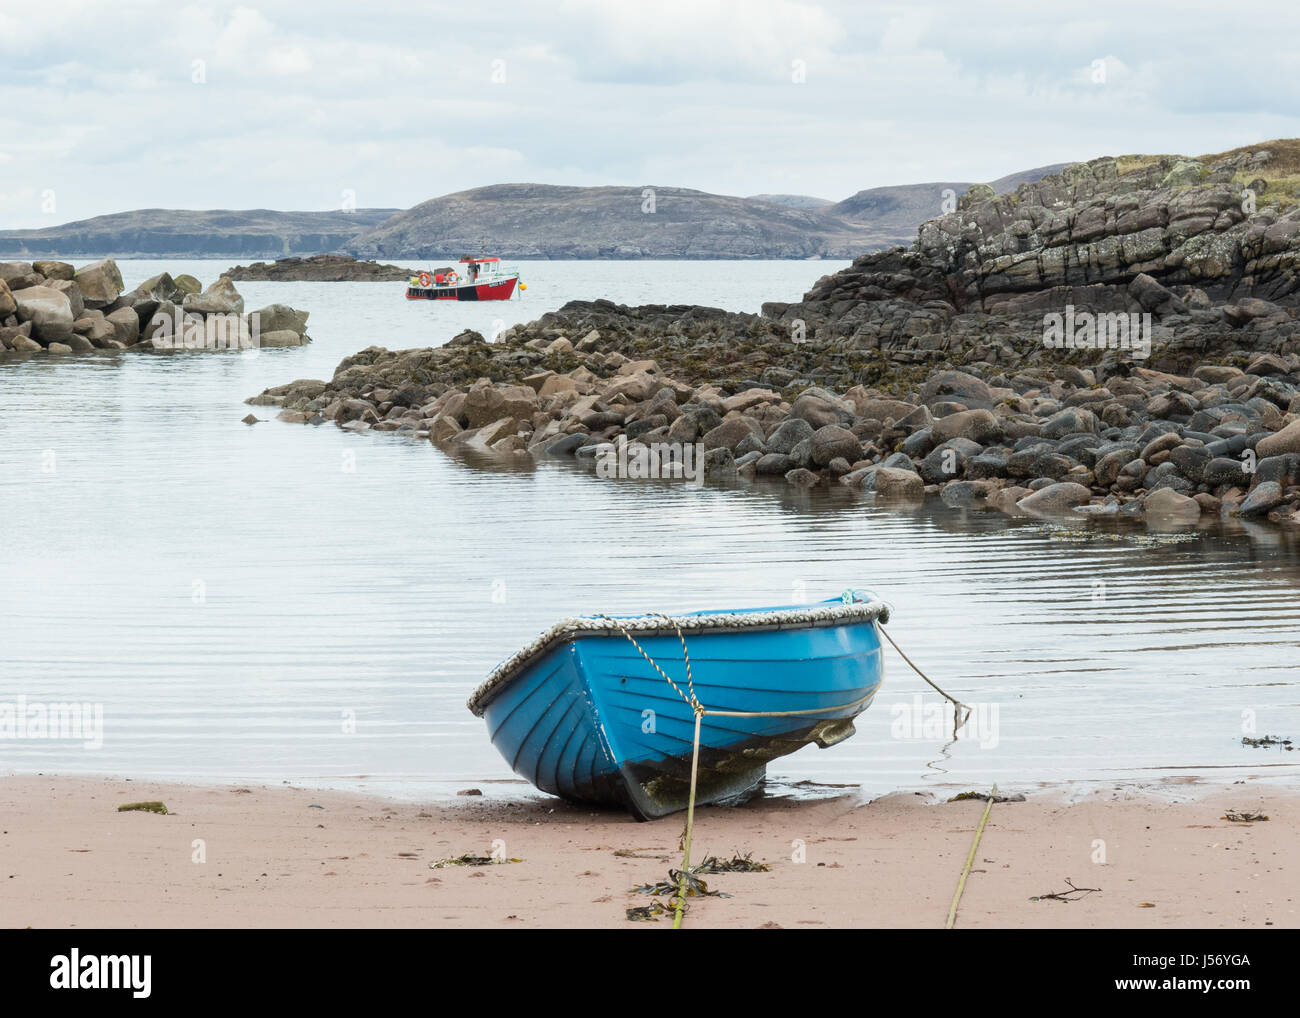 boats on Loch Ewe - Cove Harbour, Poolewe, Wester Ross, Highland, Scotland, UK - Stock Image